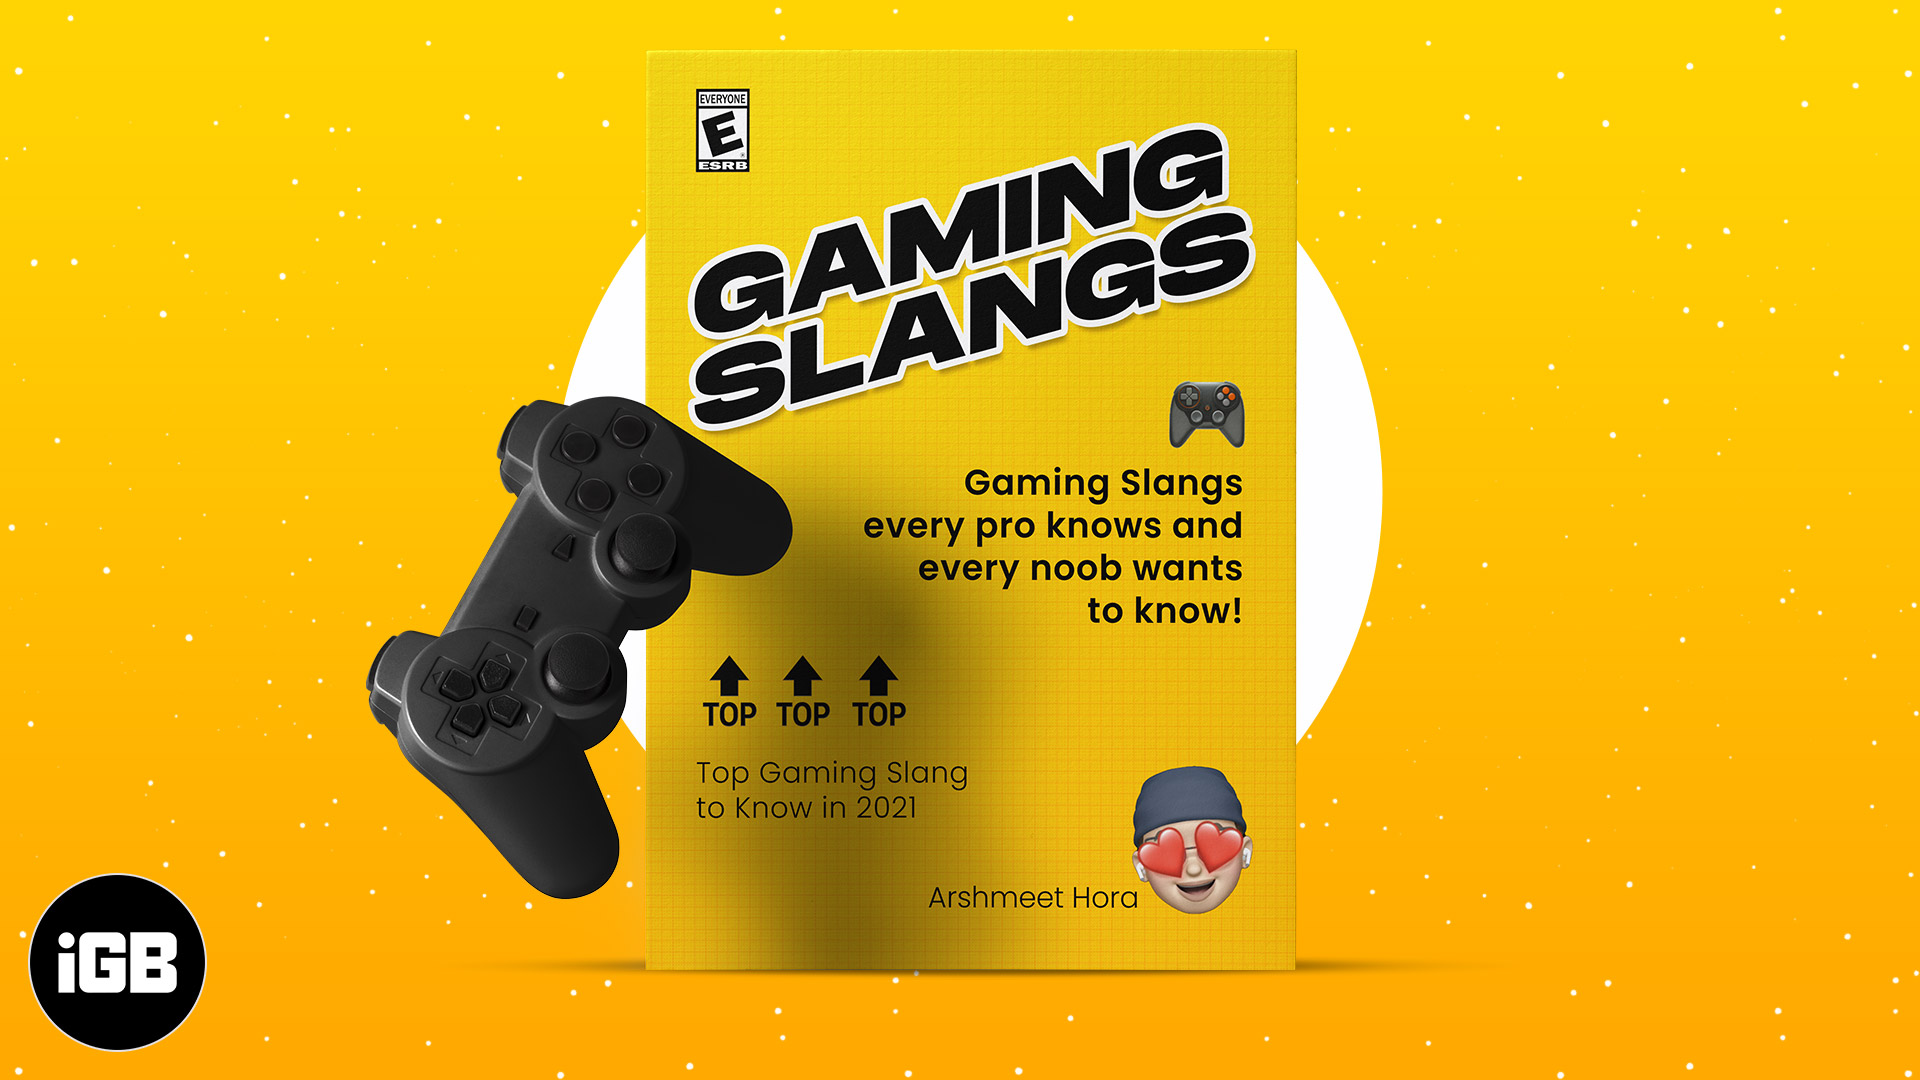 Gaming Slangs every pro knows, and every noob wants to know!